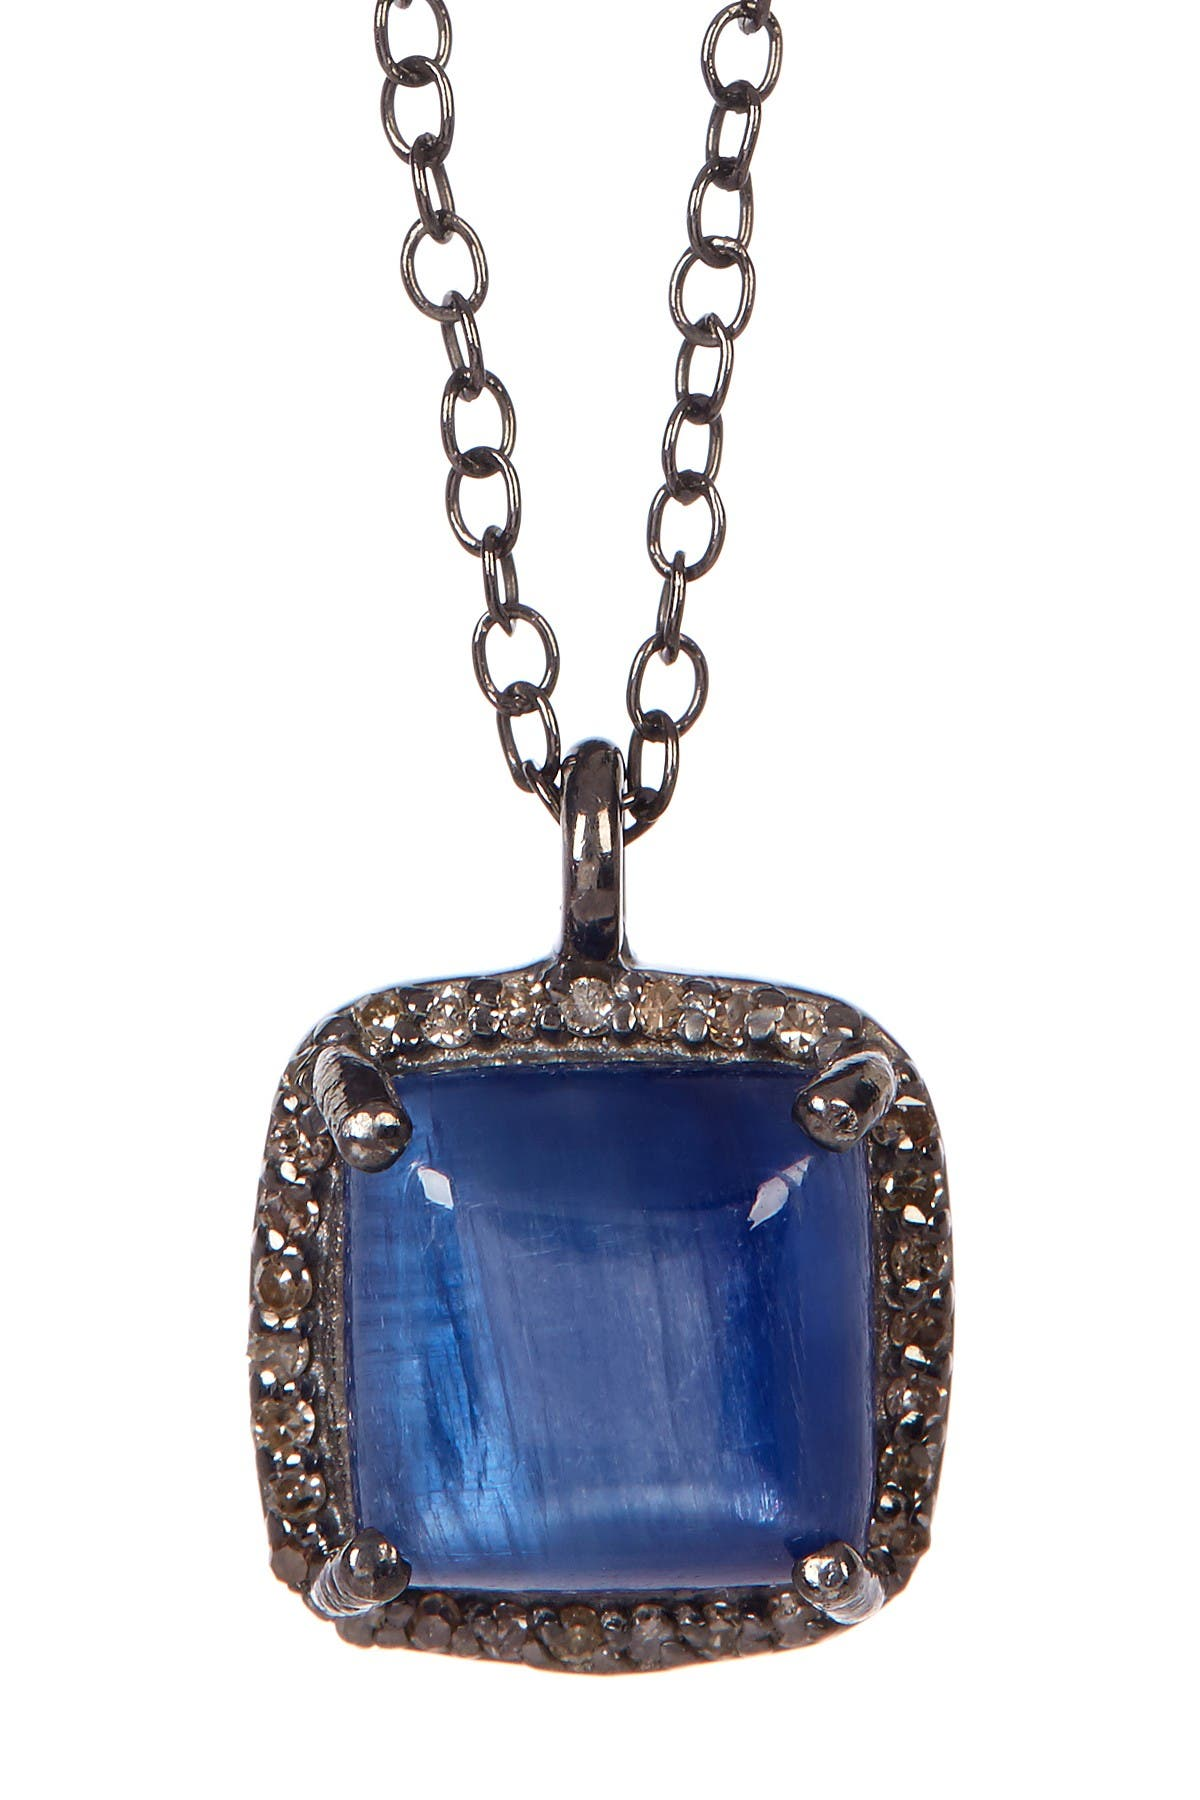 Image of ADORNIA Kyanite Diamond Halo Pendant Mini Zora Necklace - 0.50 ctw